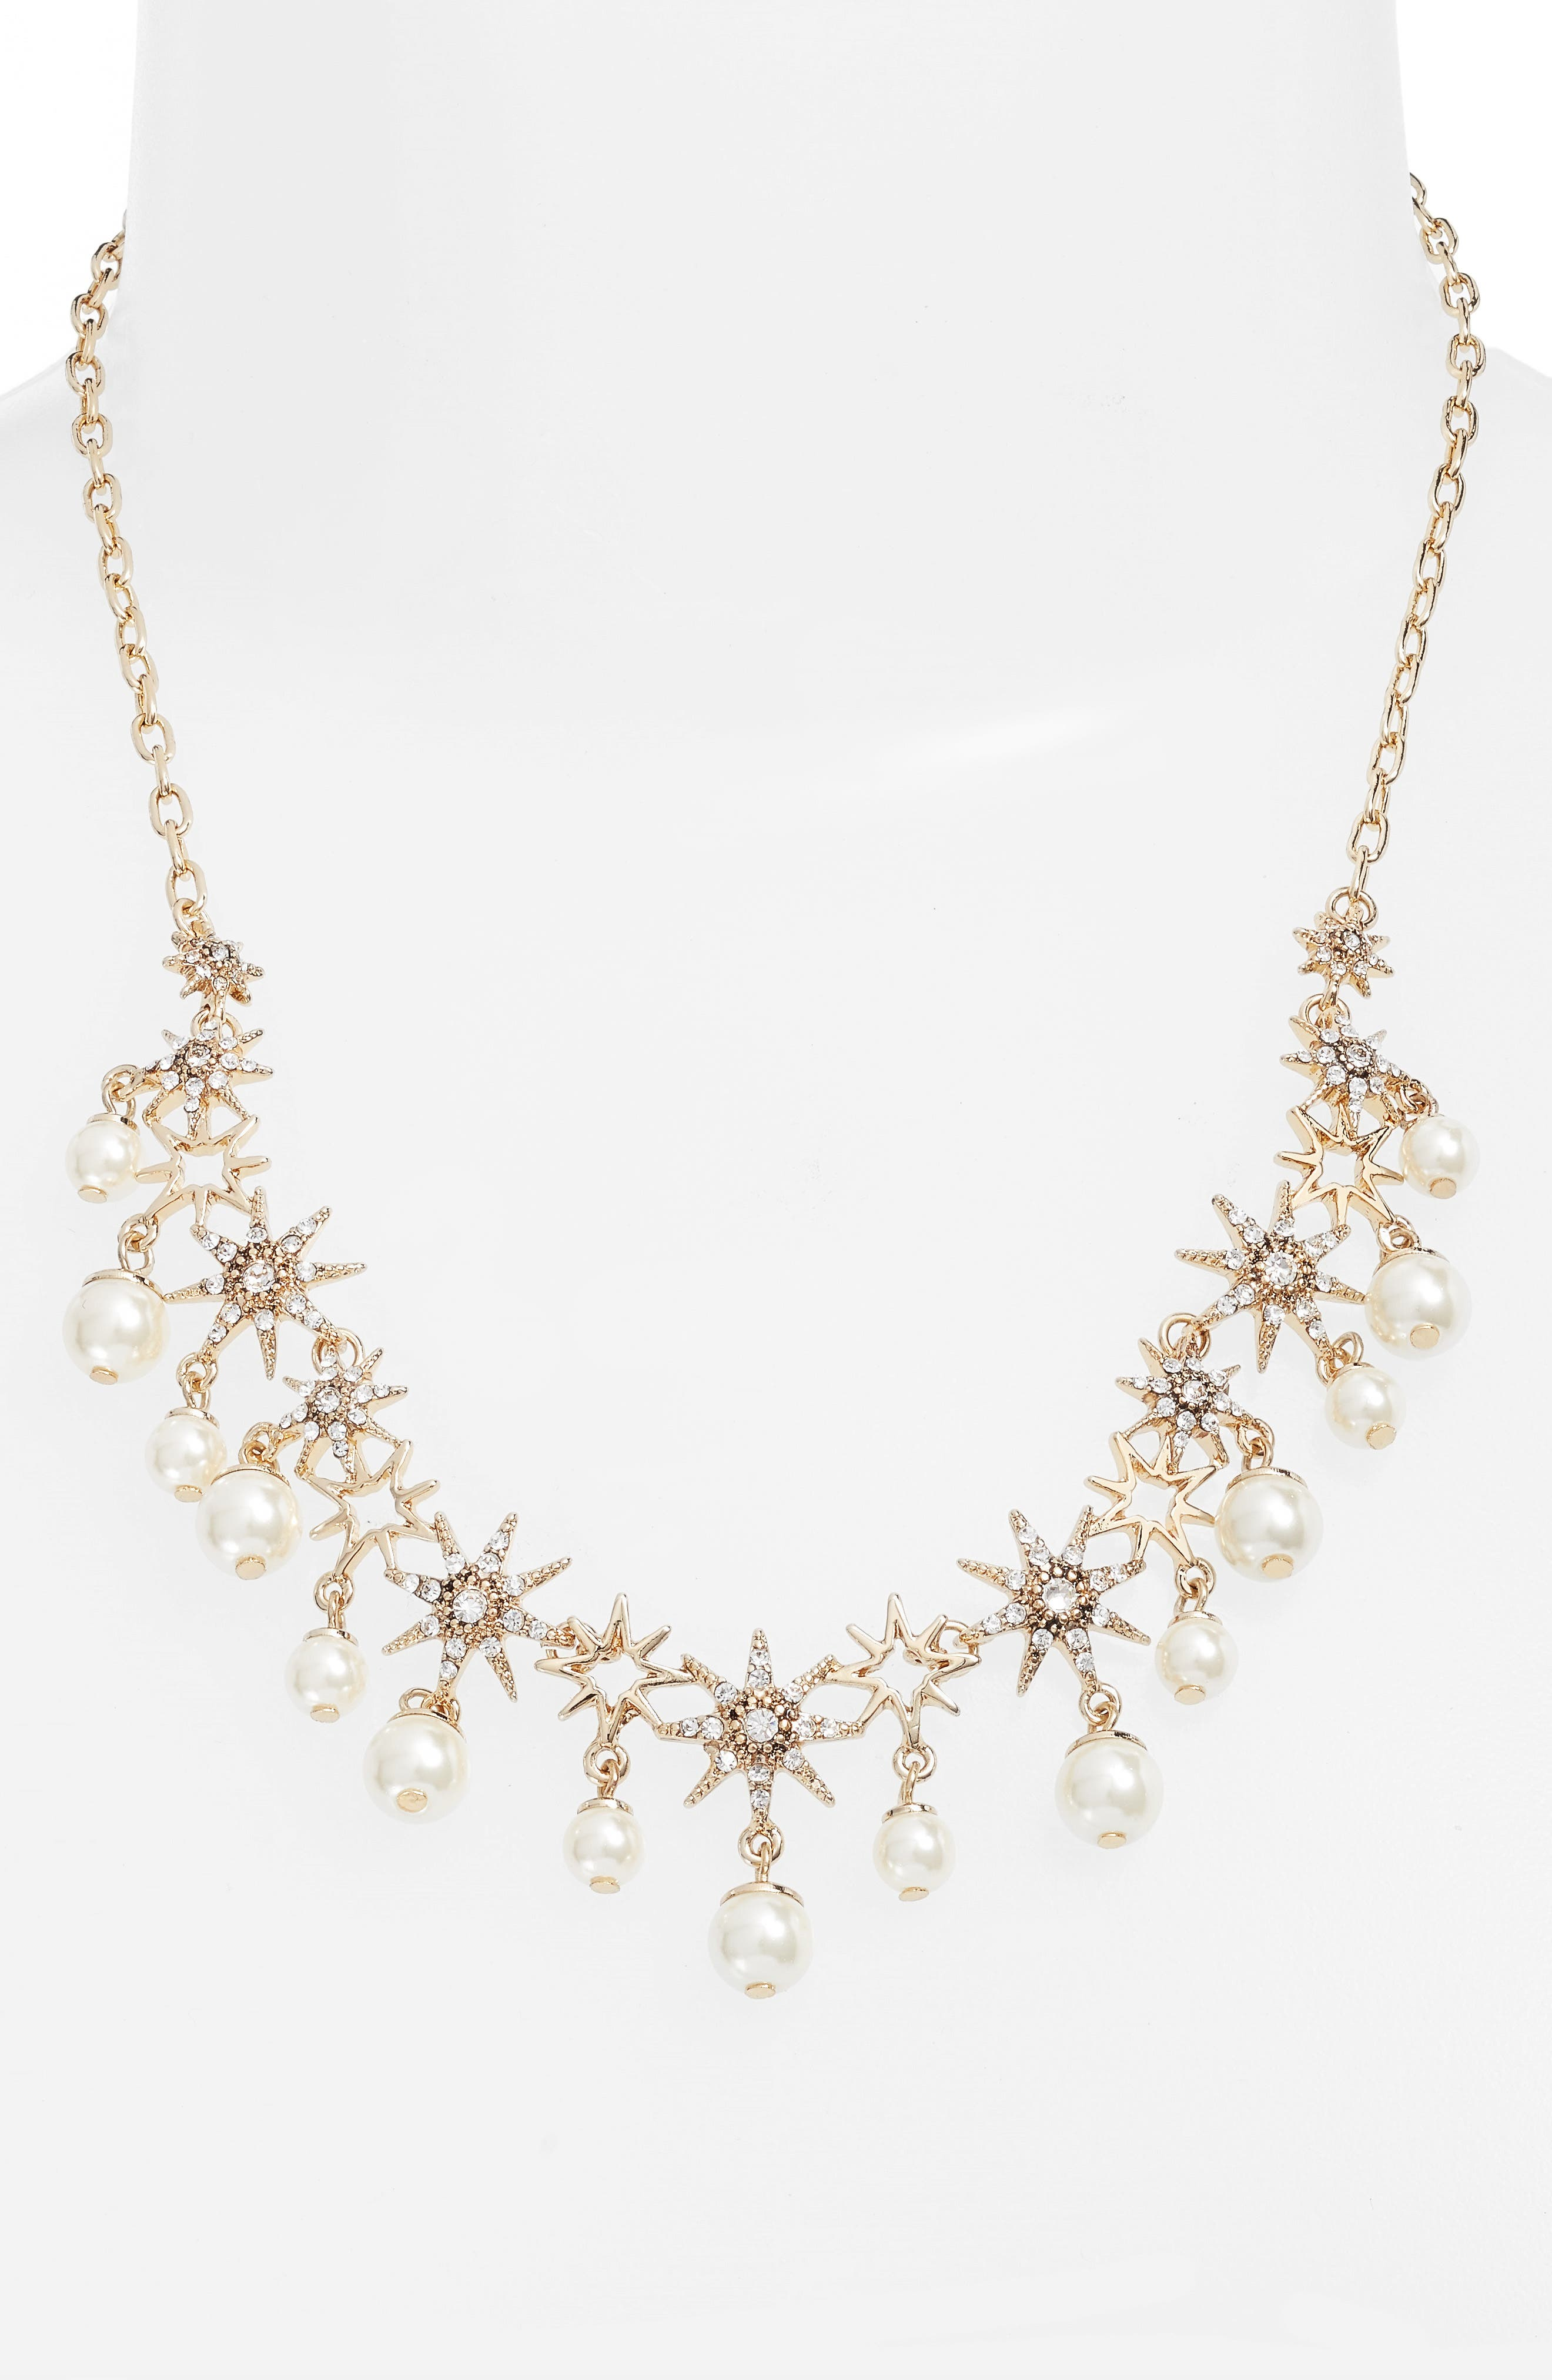 Star Collar Necklace,                             Main thumbnail 1, color,                             Gold/ Crystal/ Pearl